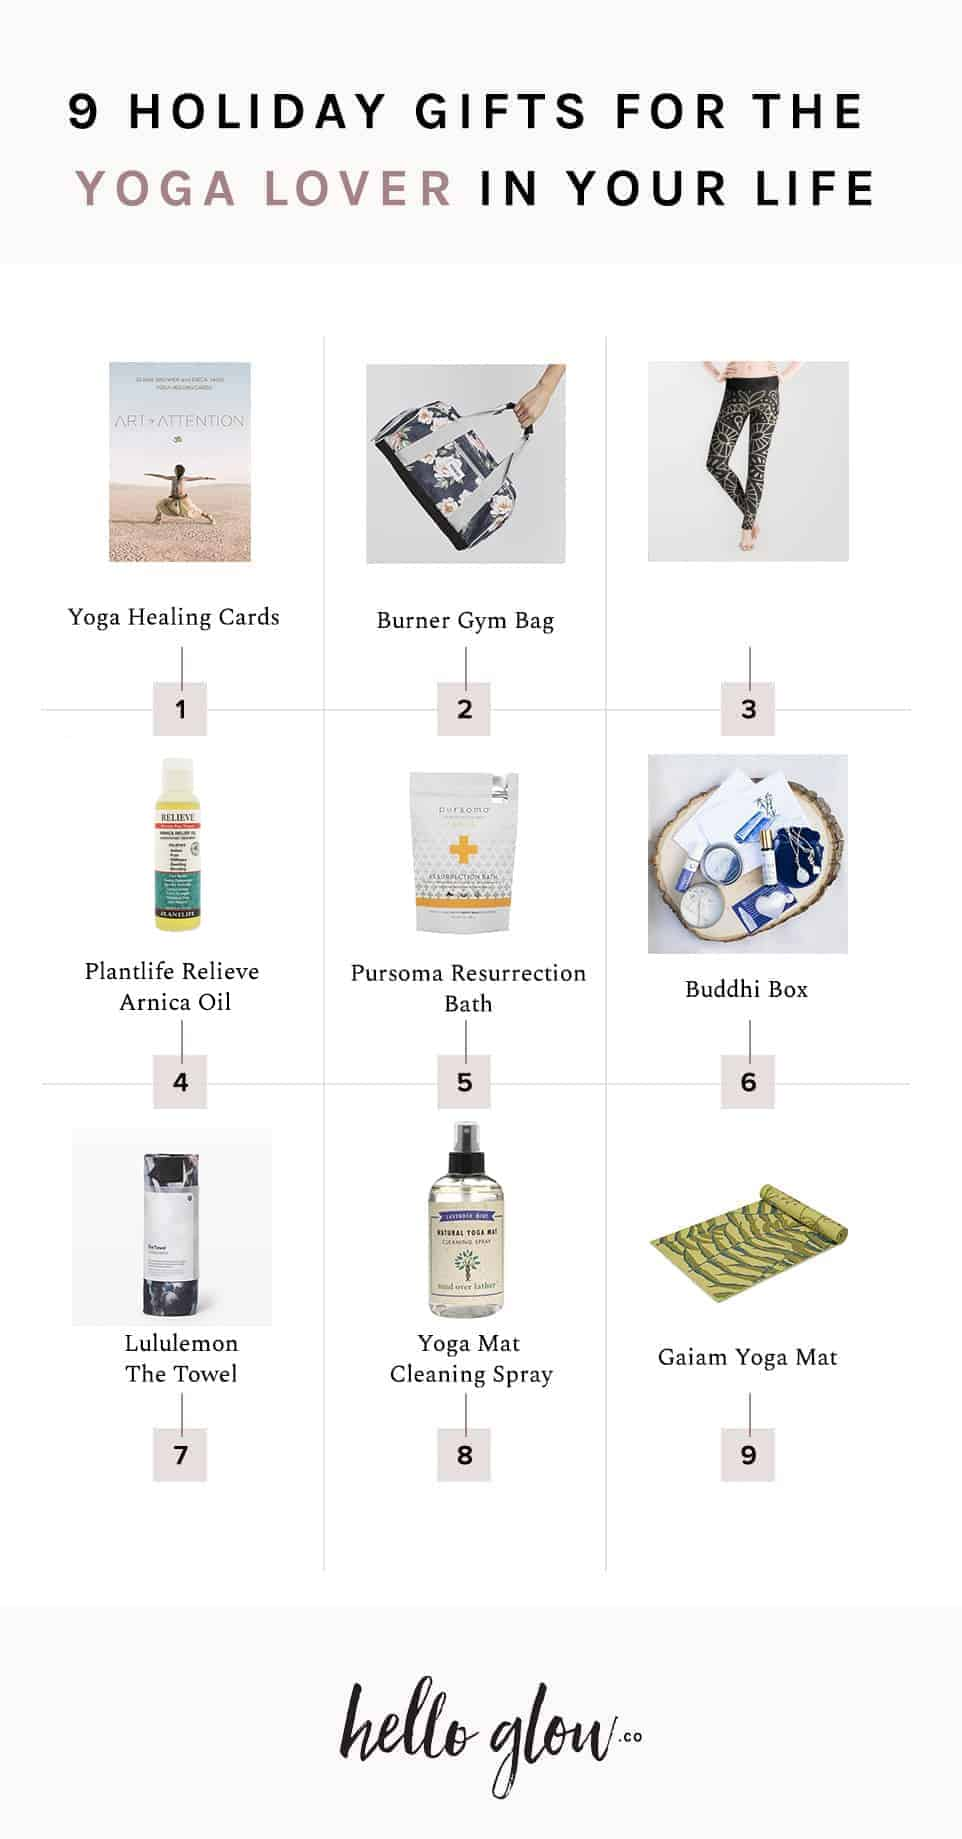 9 Gifts for the Yoga Lover - HelloGlow.co